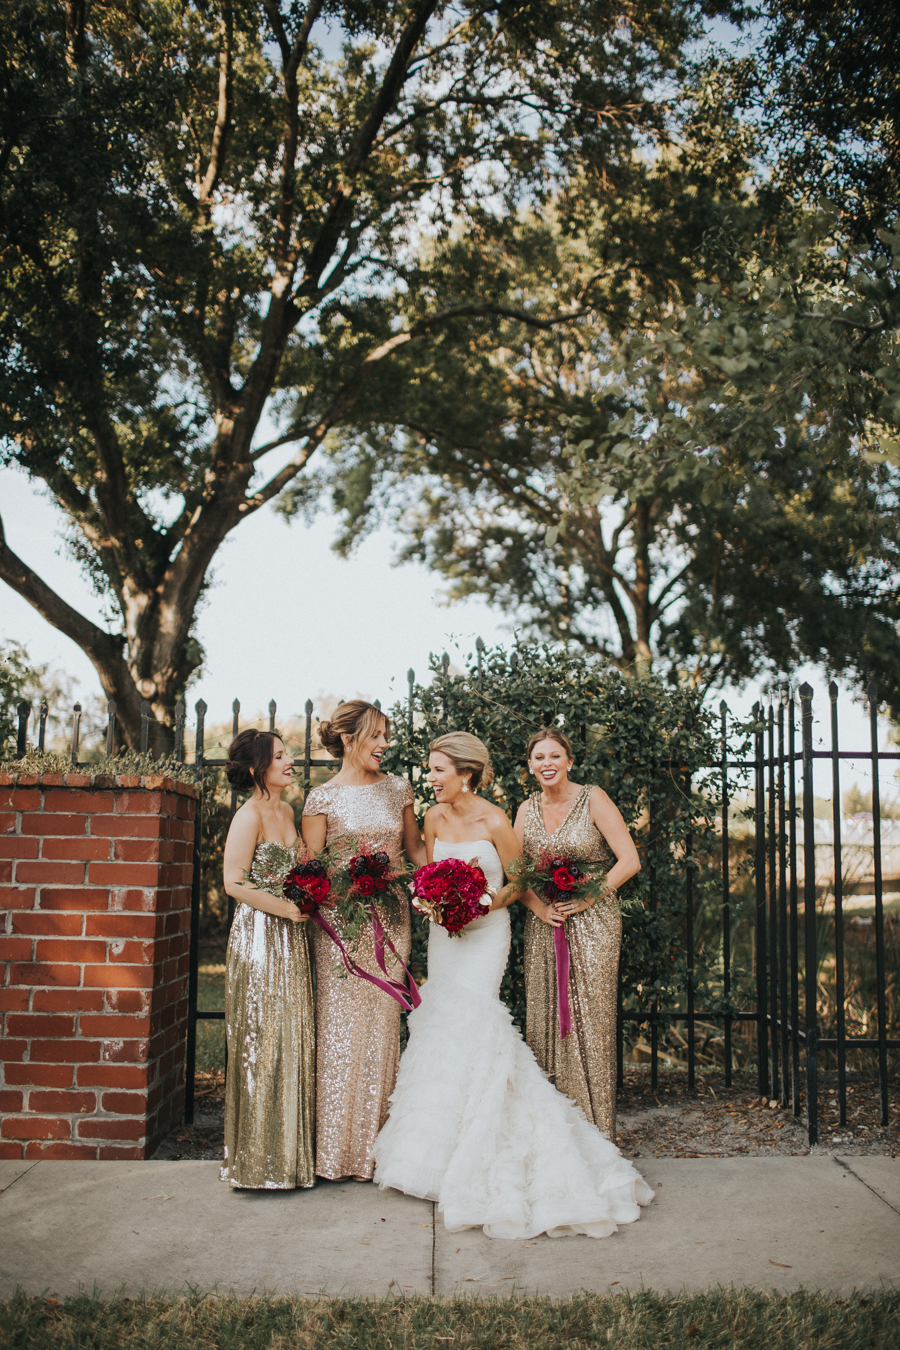 Loren and Alex Kuznetsov Gold and Burgundy wedding at Epicurean Tampa Royal Fall Wedding in Tampa Florida Inside Weddings MD Events Tampa-25.jpg